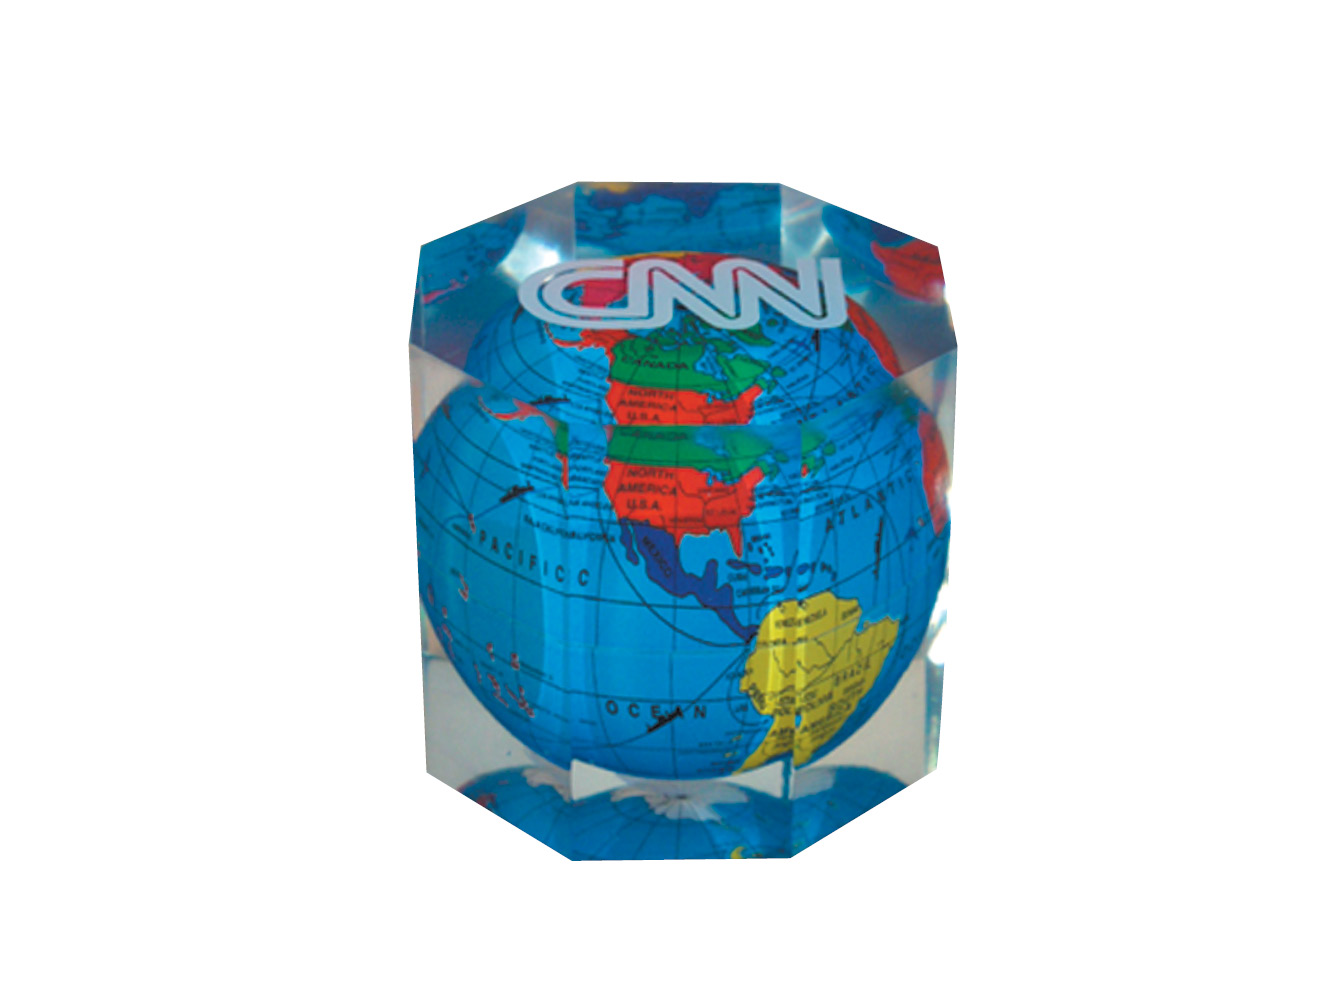 GCW7: Octagon Global Paperweight